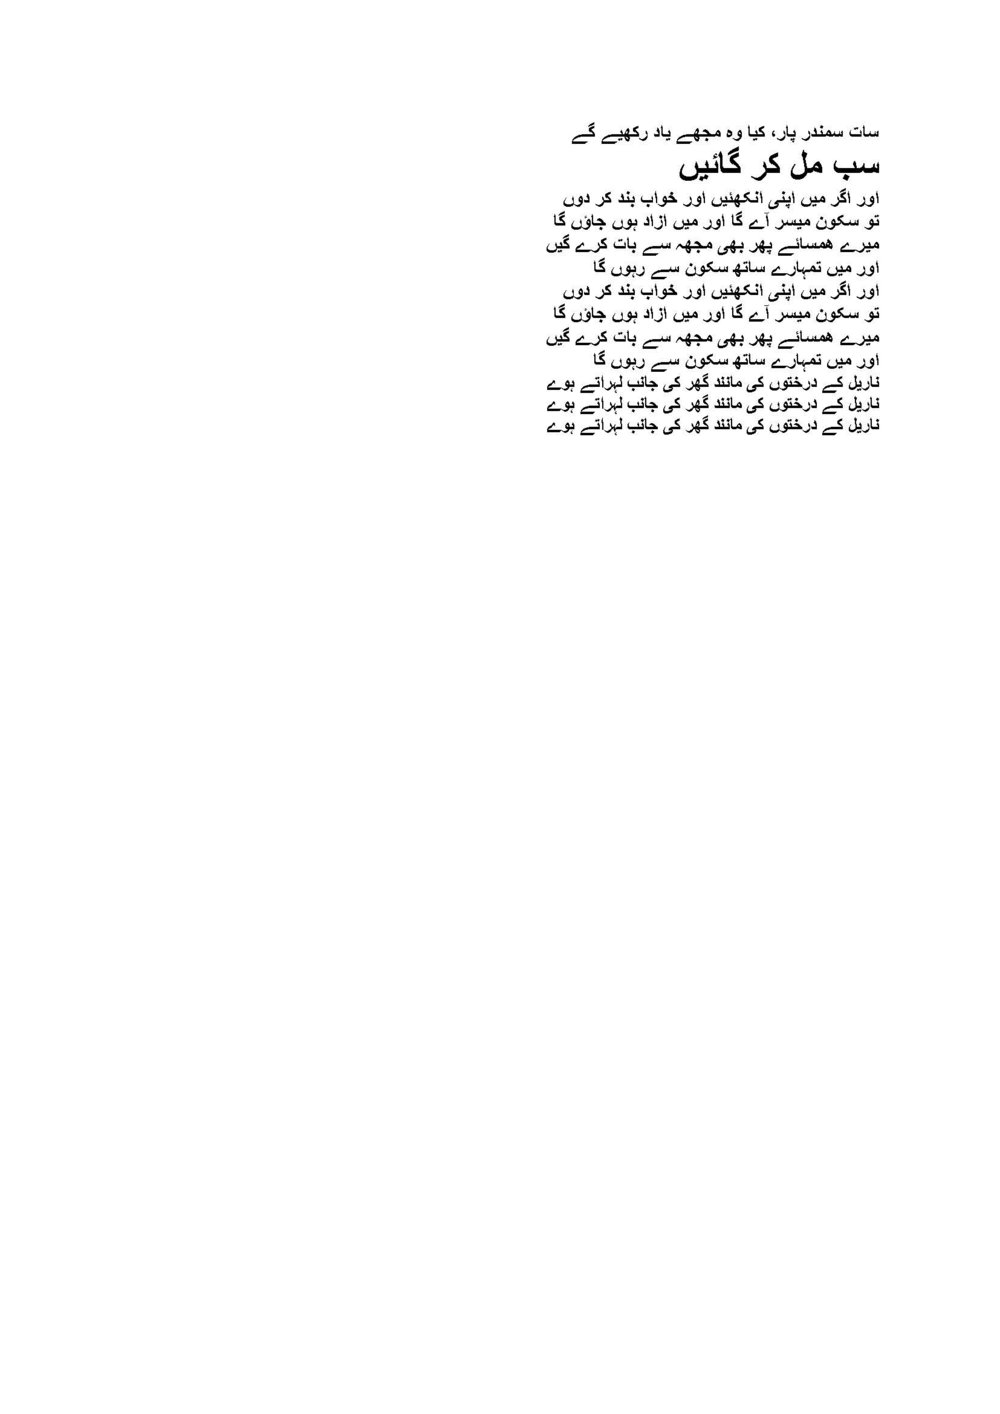 WAVING LIKE THE PALM TREES - URDU_Page_2.jpg